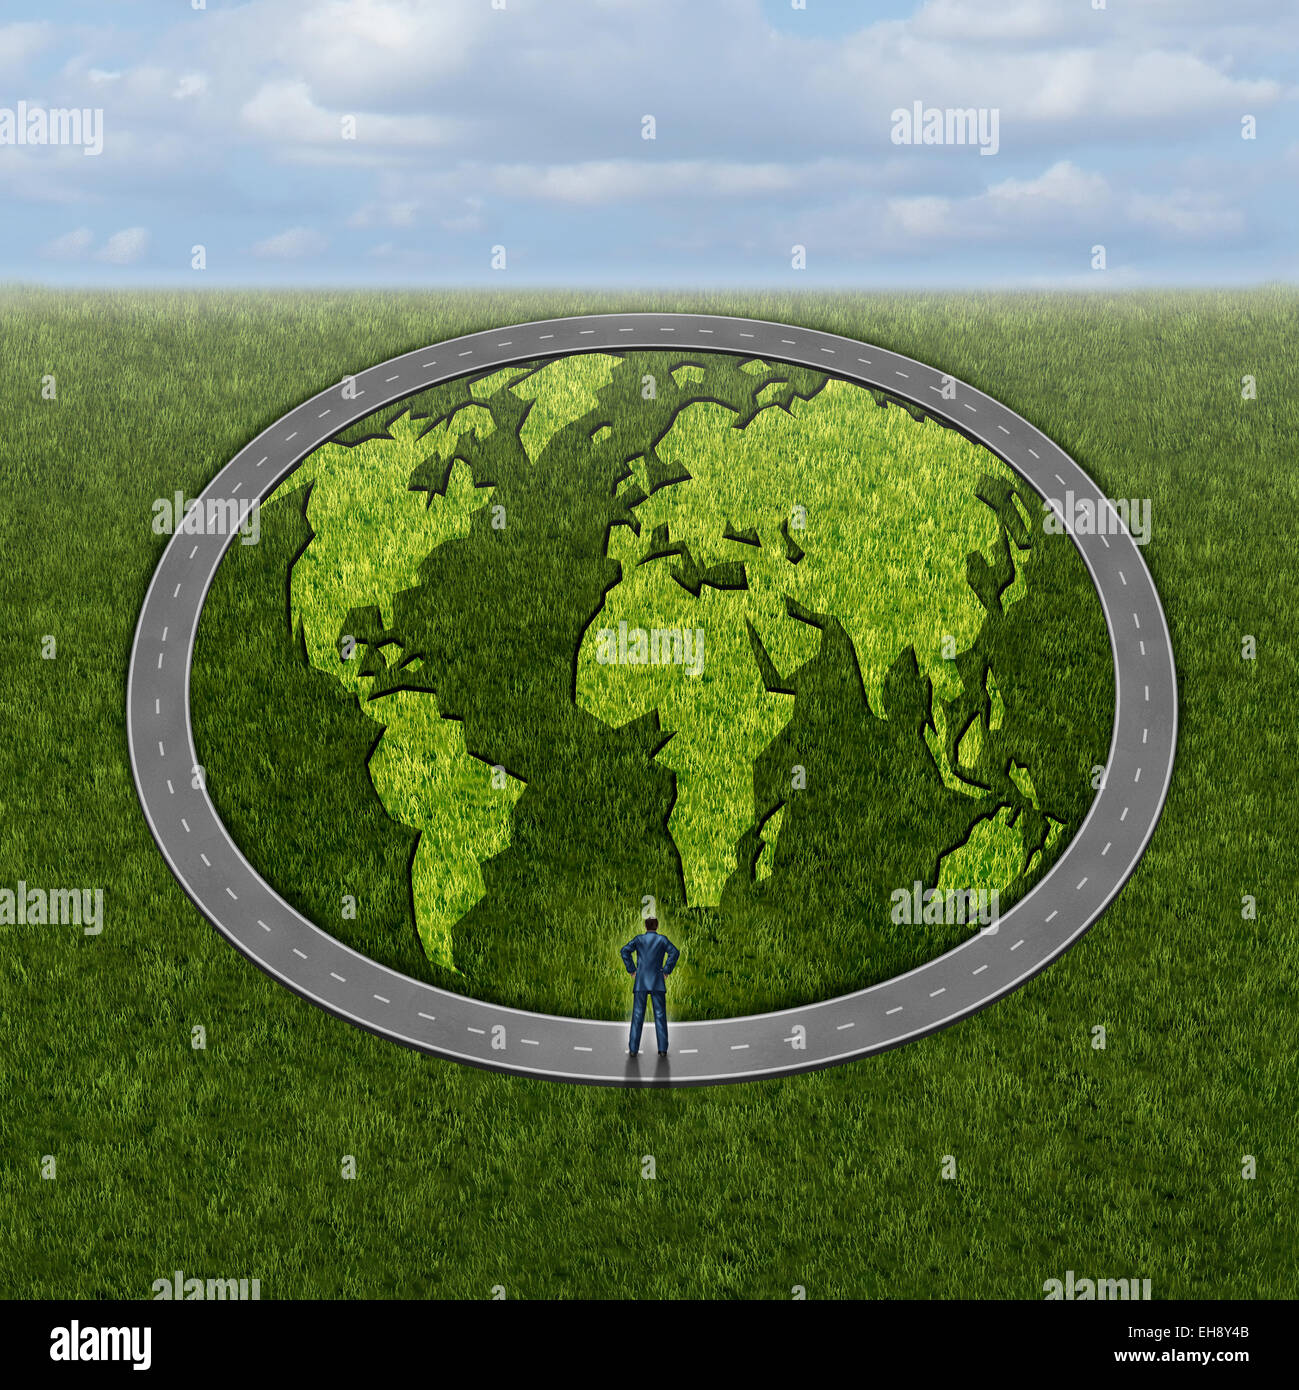 Global markets access and accessibility concept as a businessman standing in front of a infinite circle road with - Stock Image